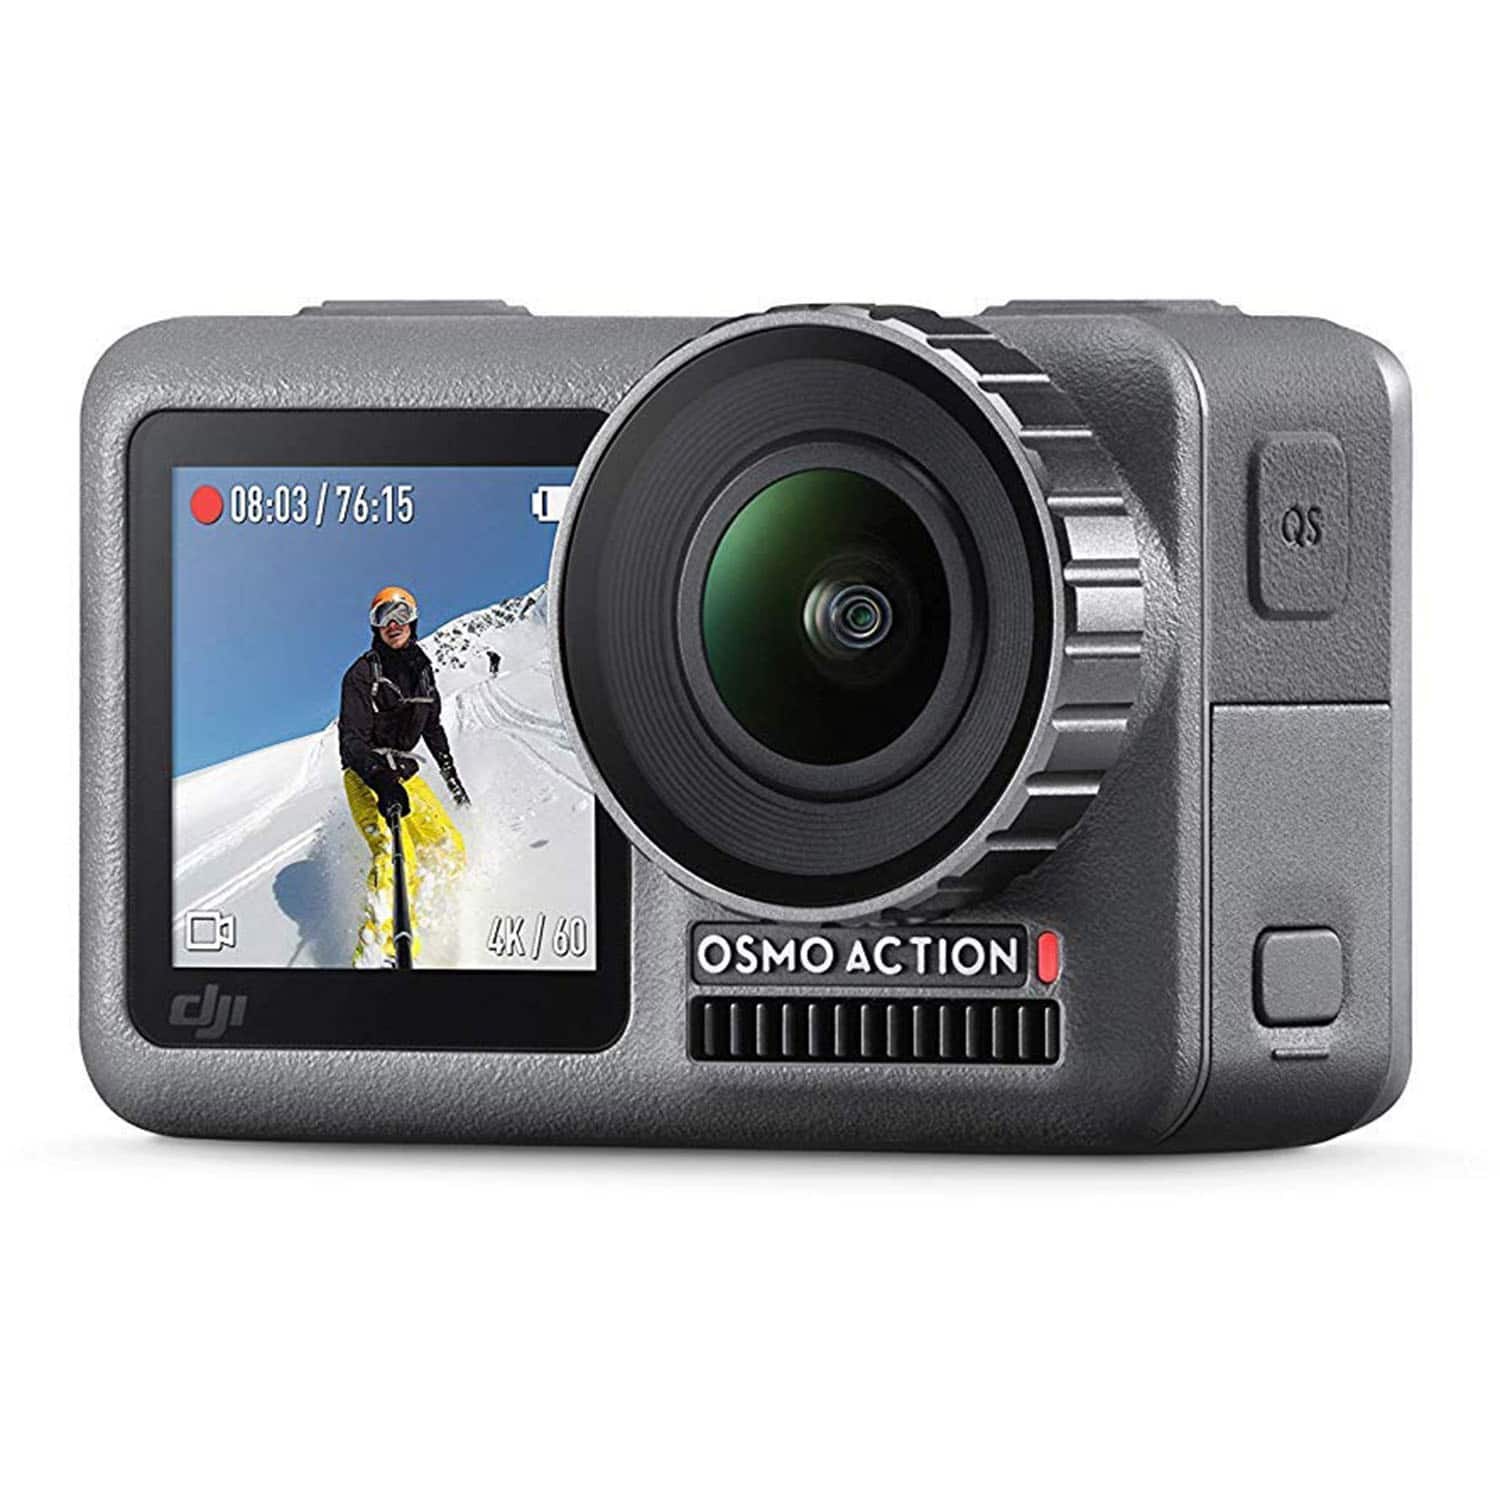 DJI OSMO Action 4K HDR Cam Digital Camera with 2 Displays 36FT/11M Waterproof - $231.2 + Free Shipping